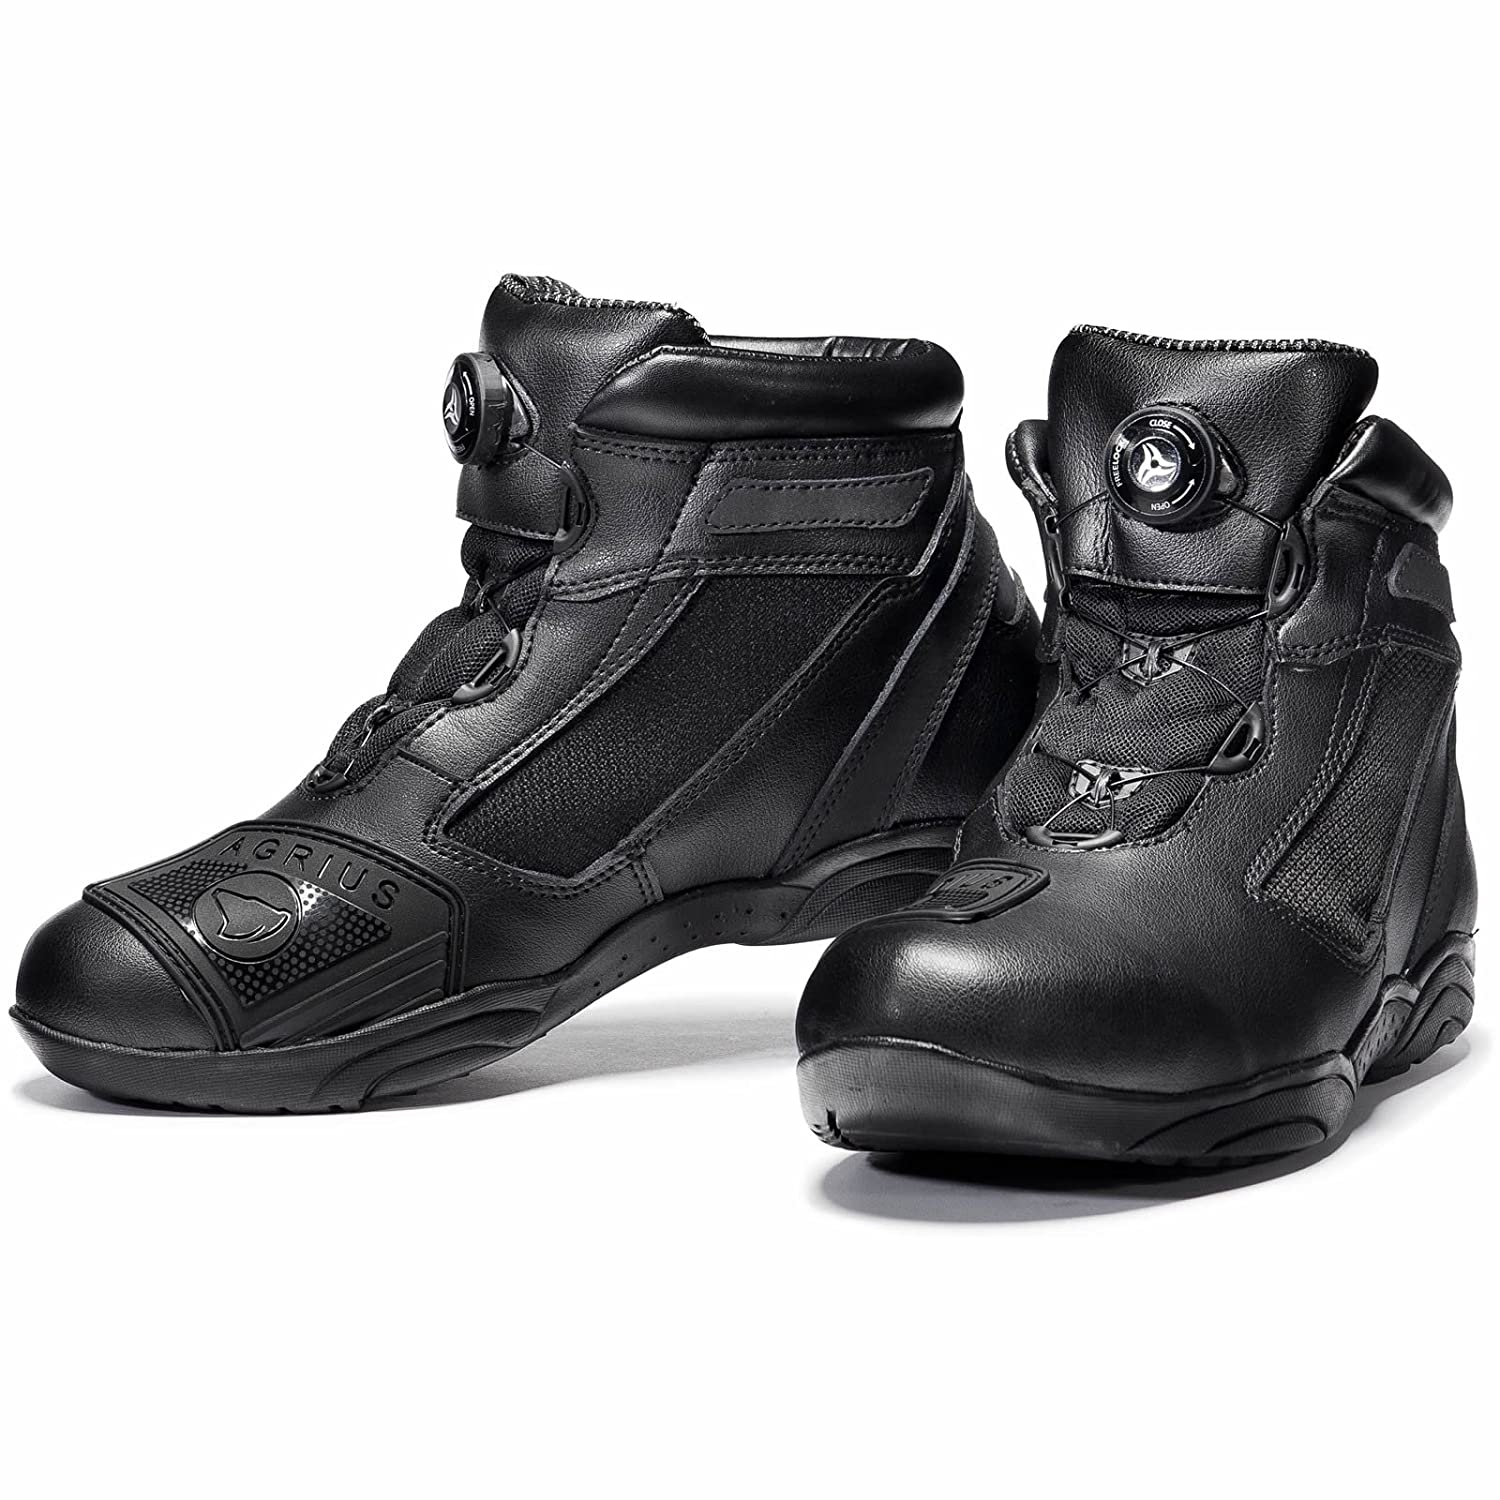 Agrius Lima Motorcycle Boots